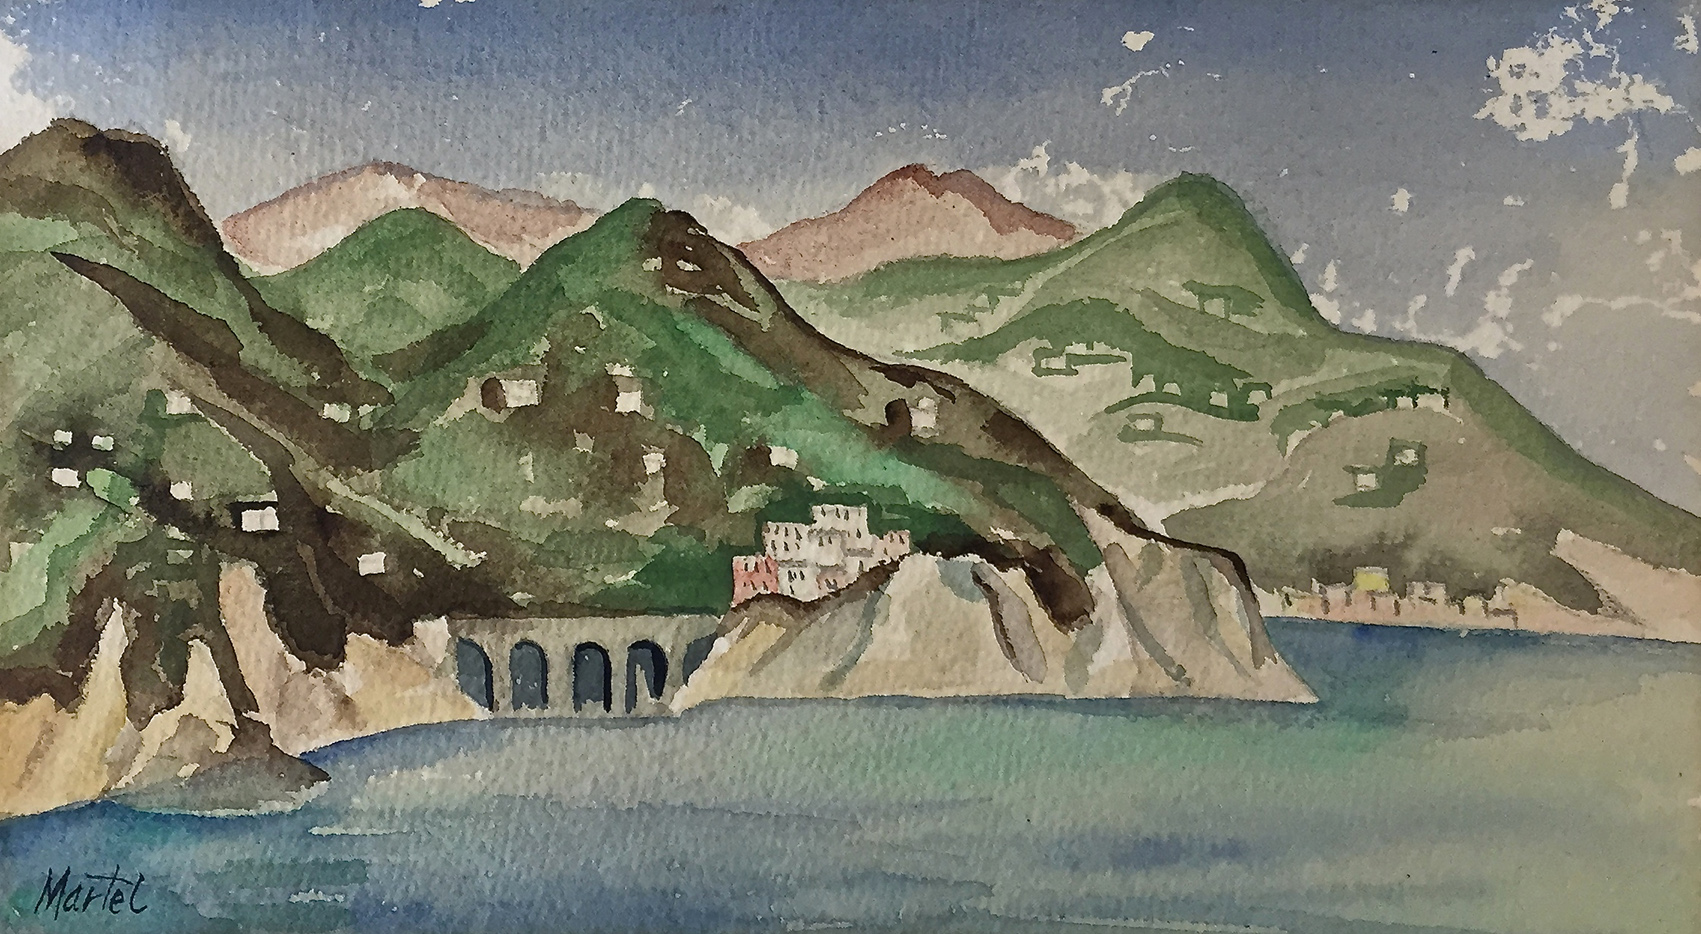 Martel Schwichtenberg | Coast of Amalfi | watercolour | 1932 | signed, verso dated | 11.7 x 20.5